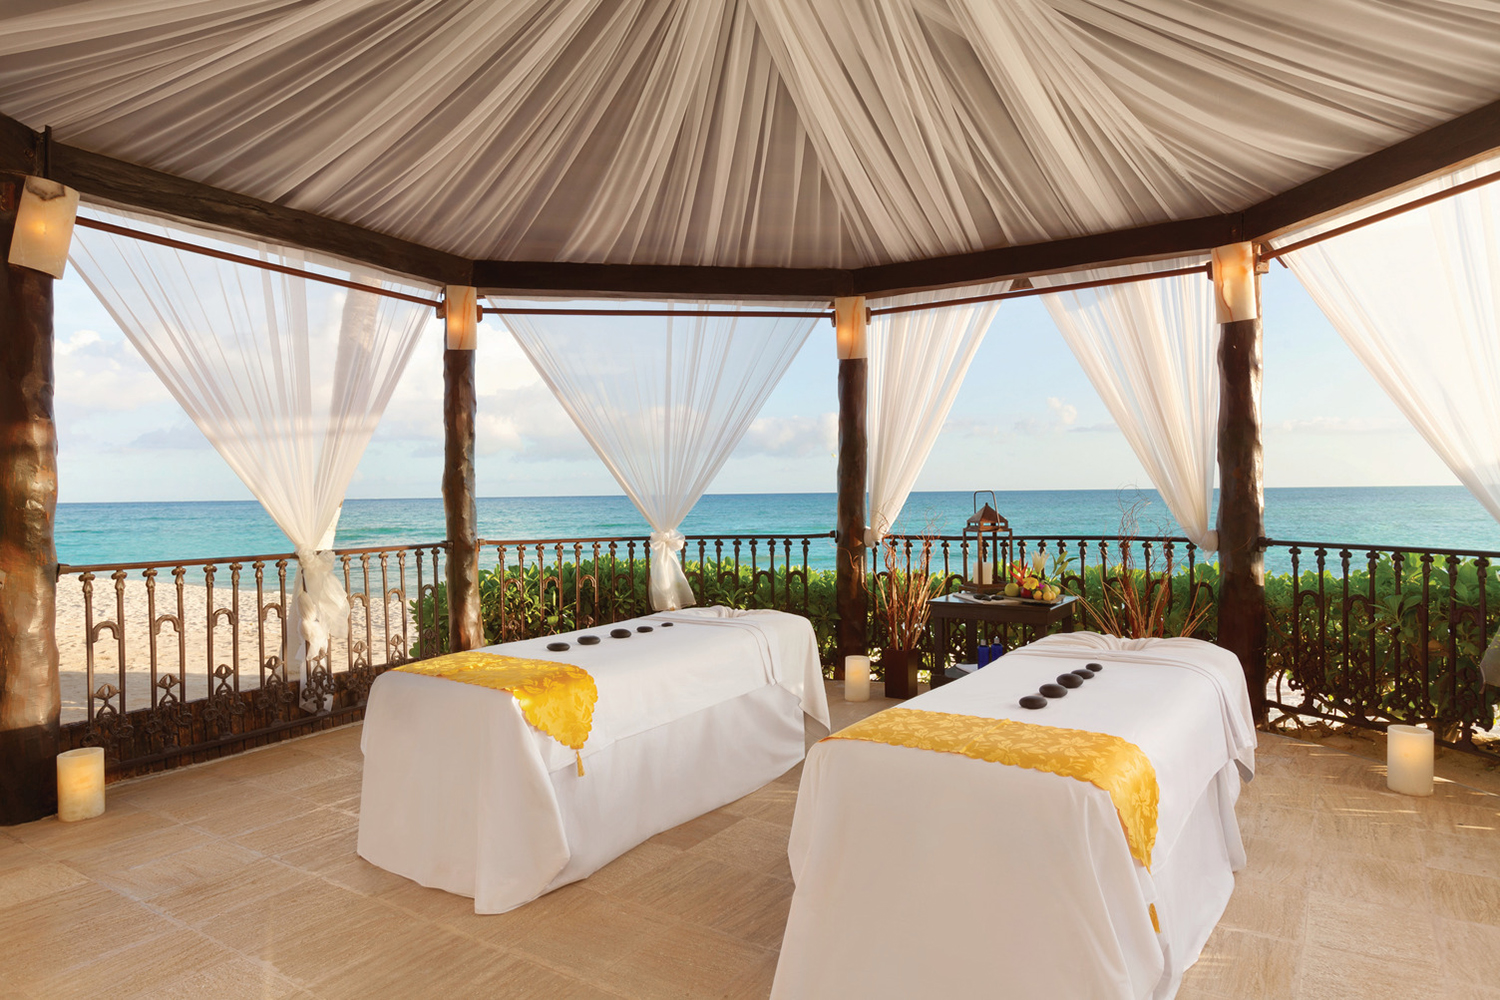 Guests can also enjoy outdoor massages at Aura Spa.